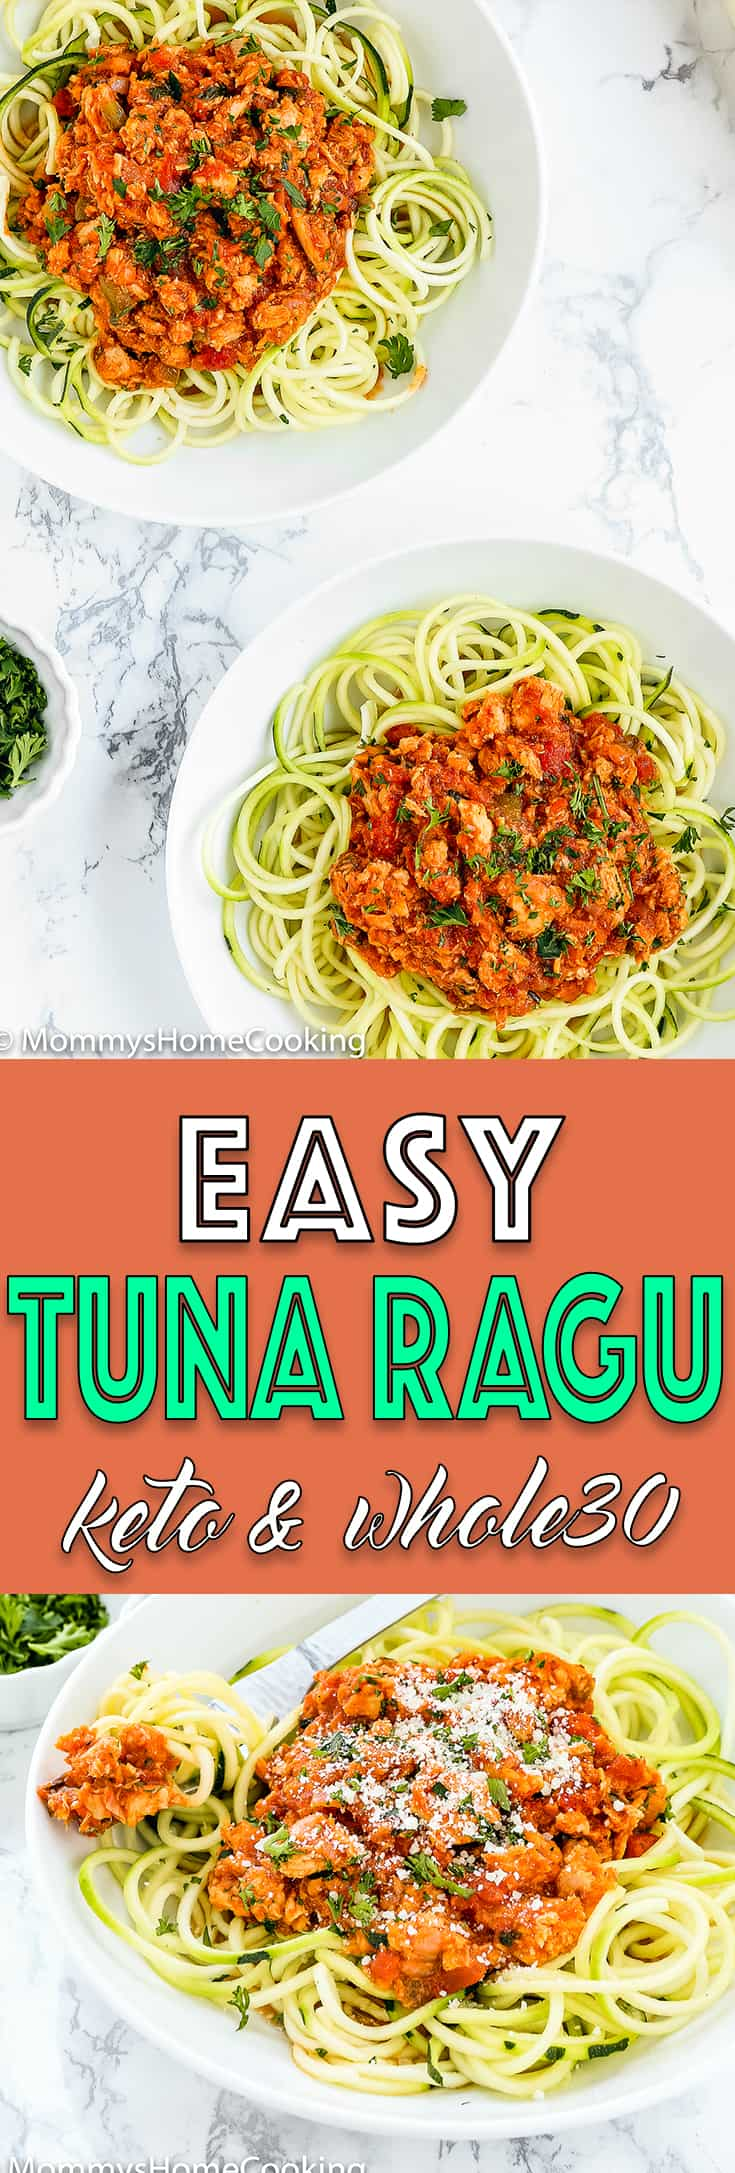 This Easy Tuna Ragu recipe is delicious, light and healthy yet full of robust flavors. It's ridiculously easy to make and everything is cooked in one pan in less than 30 minutes. [Keto Friendly] [Whole 30 Friendly] https://mommyshomecooking.com